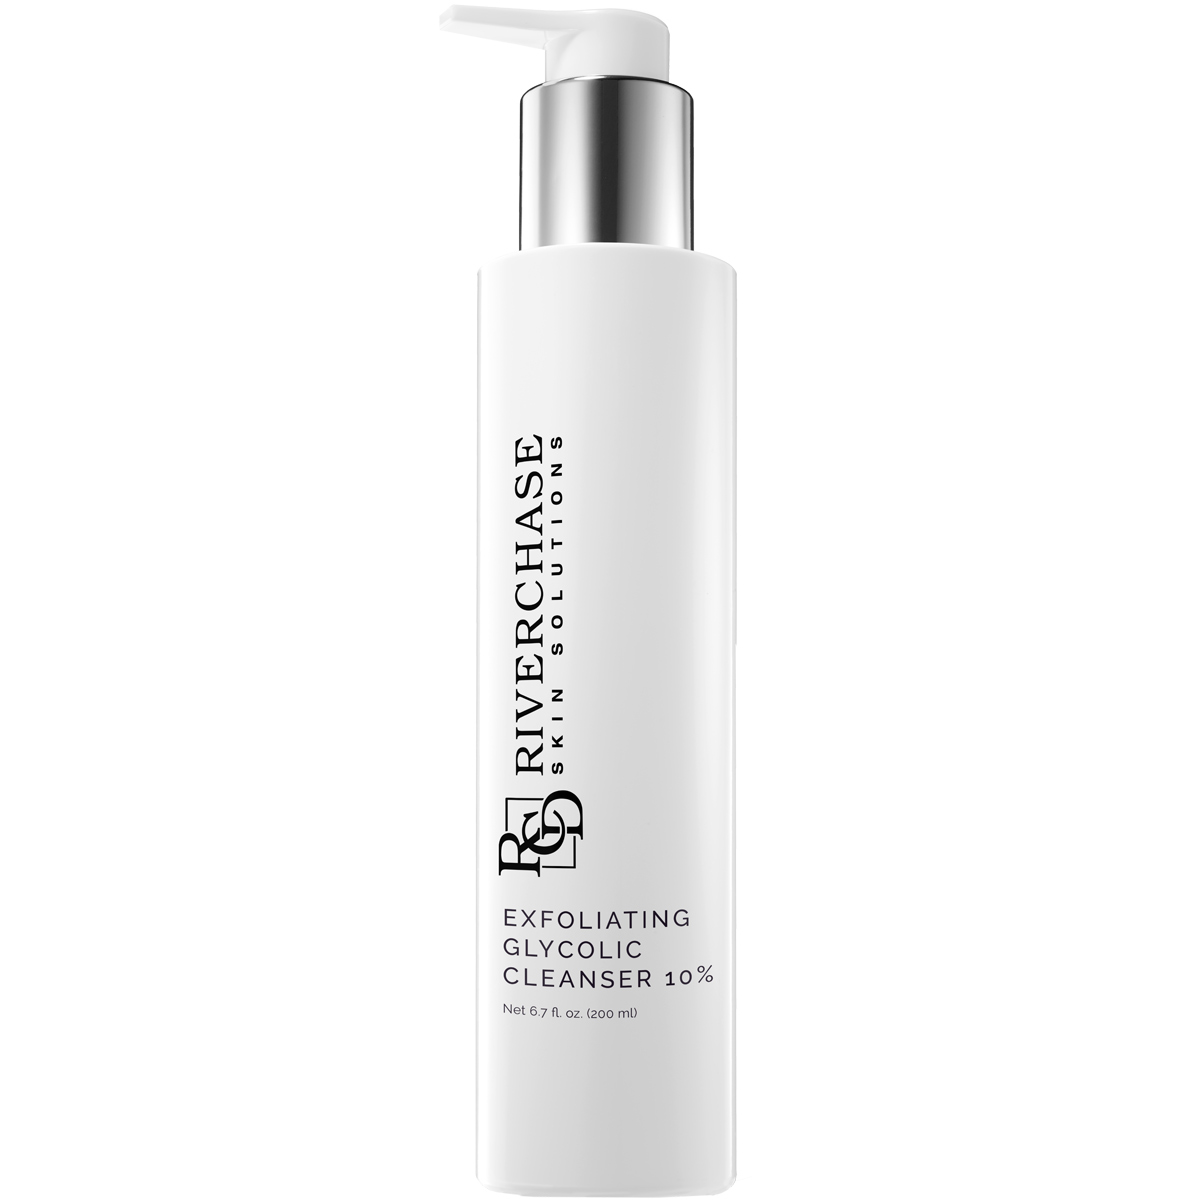 Exfoliating Glycolic Cleanser 10%